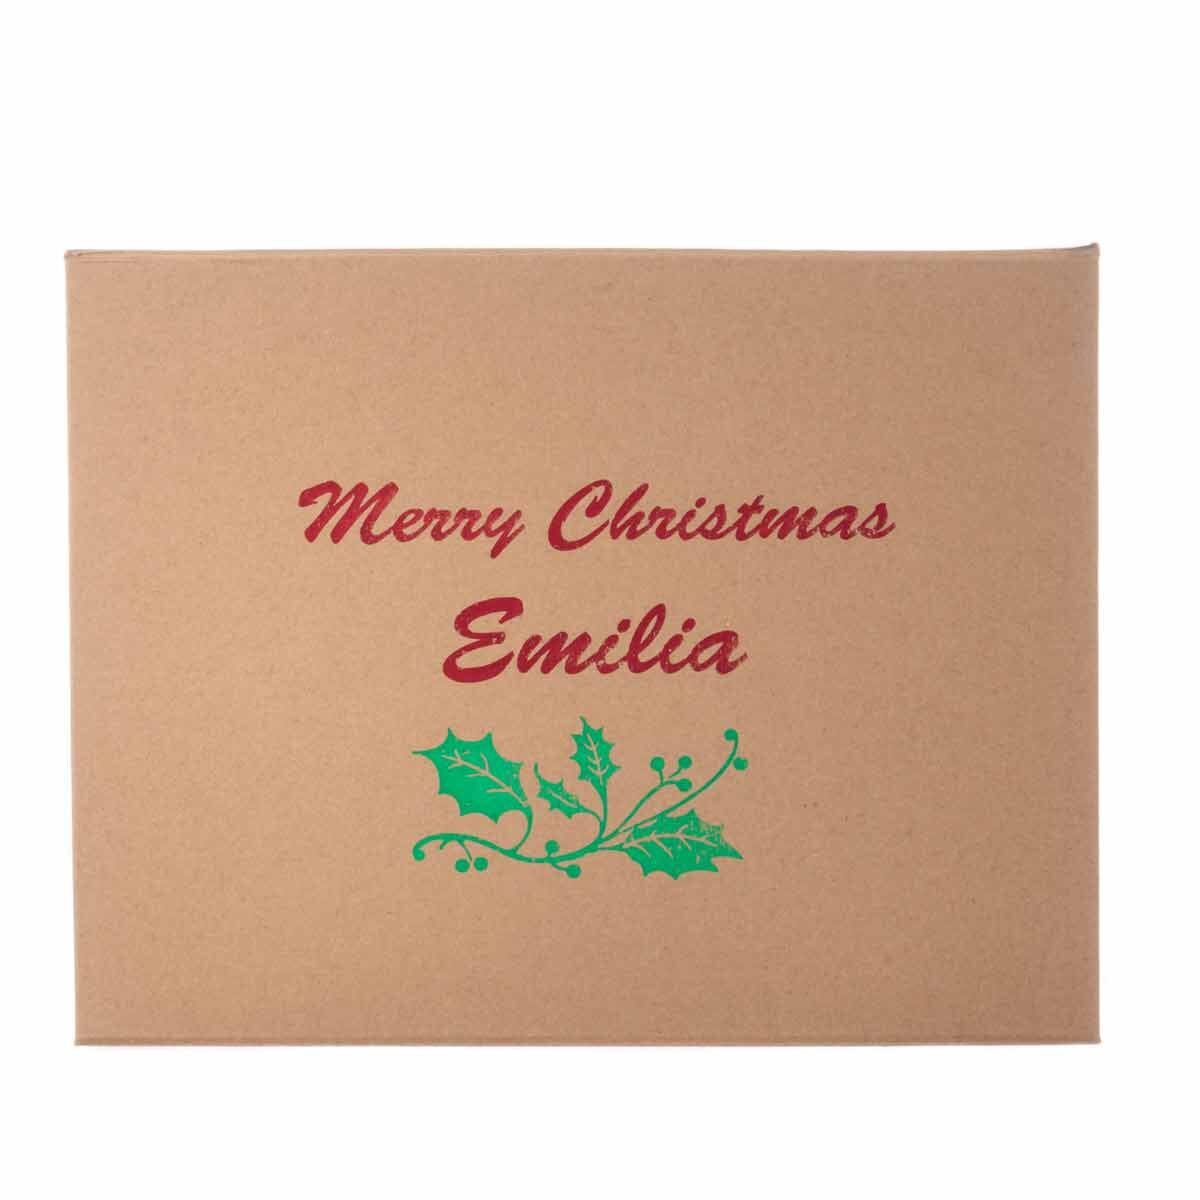 Personalised Christmas Gift Box Festive Holly